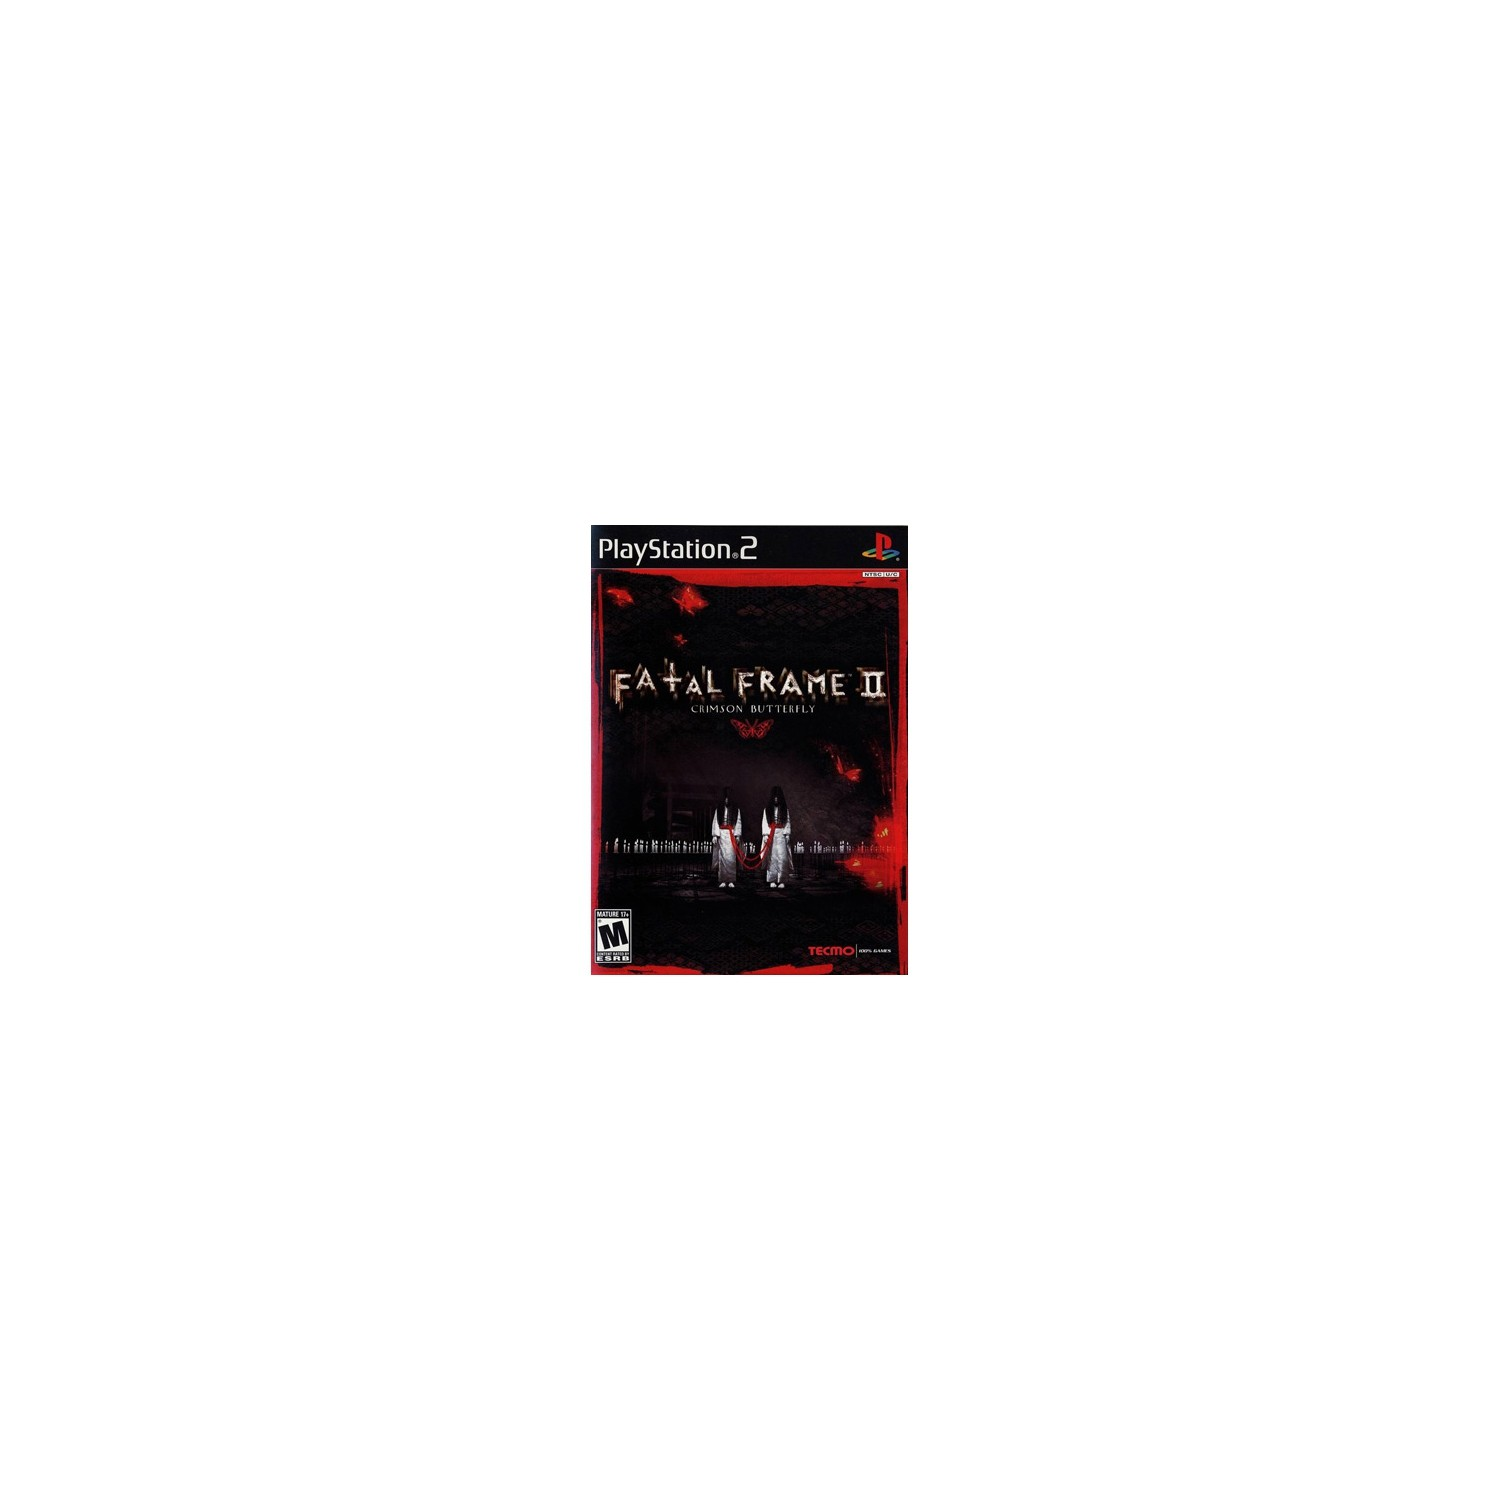 Fatal Frame II 2 Crimson Butterfly (PS2) : Retro Games - Best Buy Canada